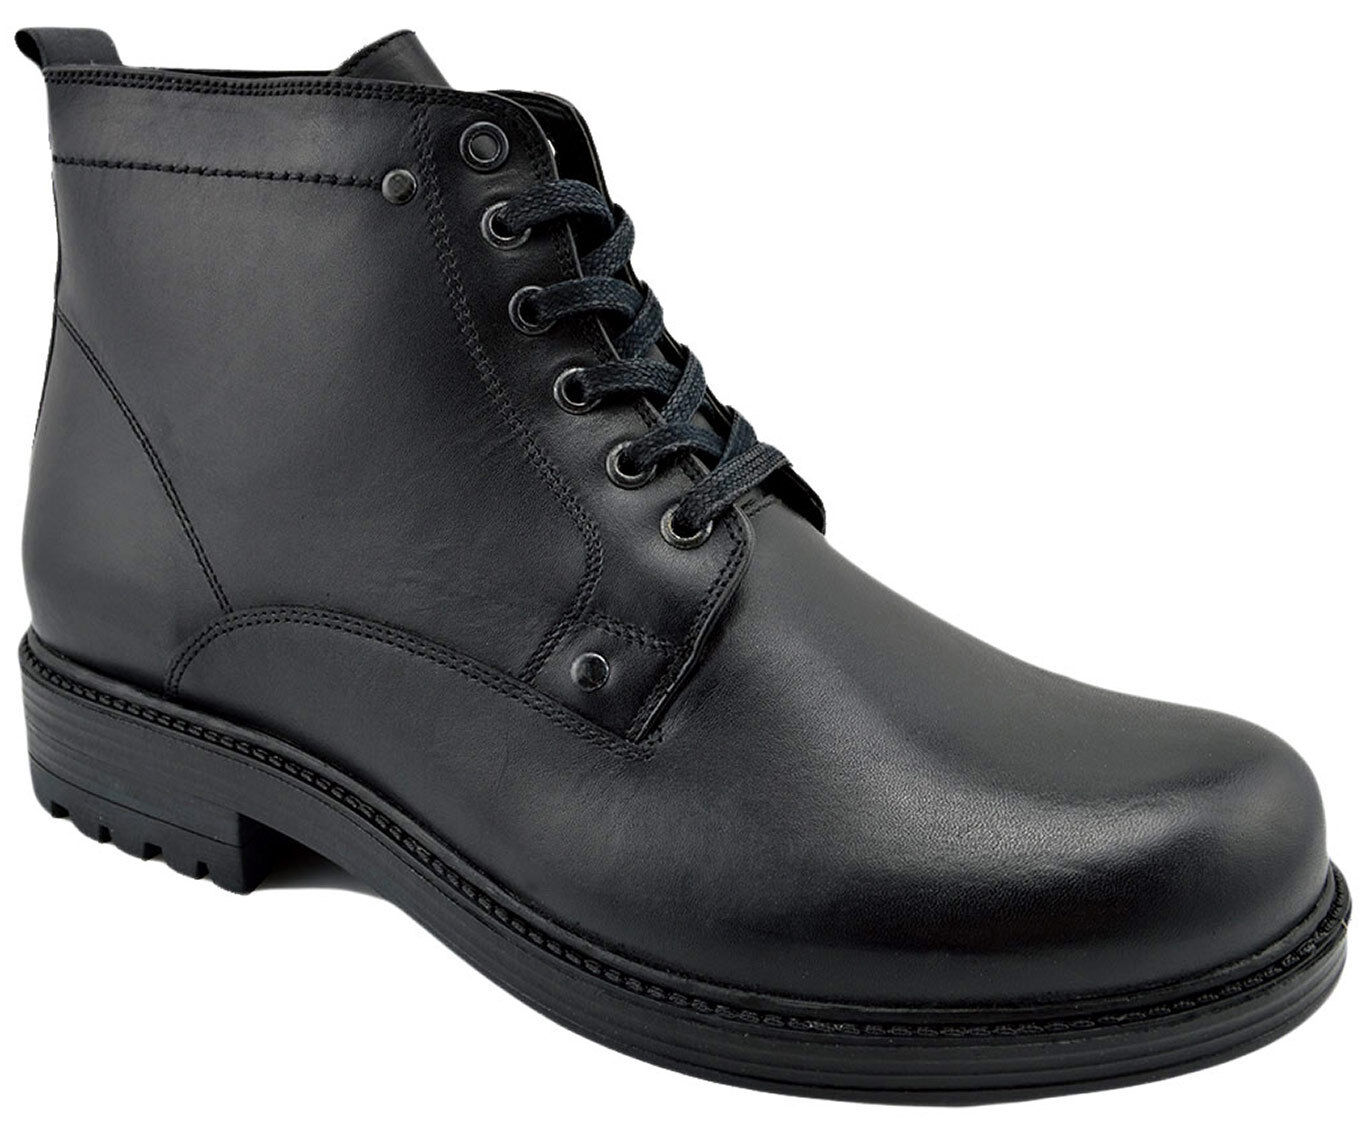 230 OVATTO Black Calf Hiking Leather Ankle Boots Men shoes NEW COLLECTION